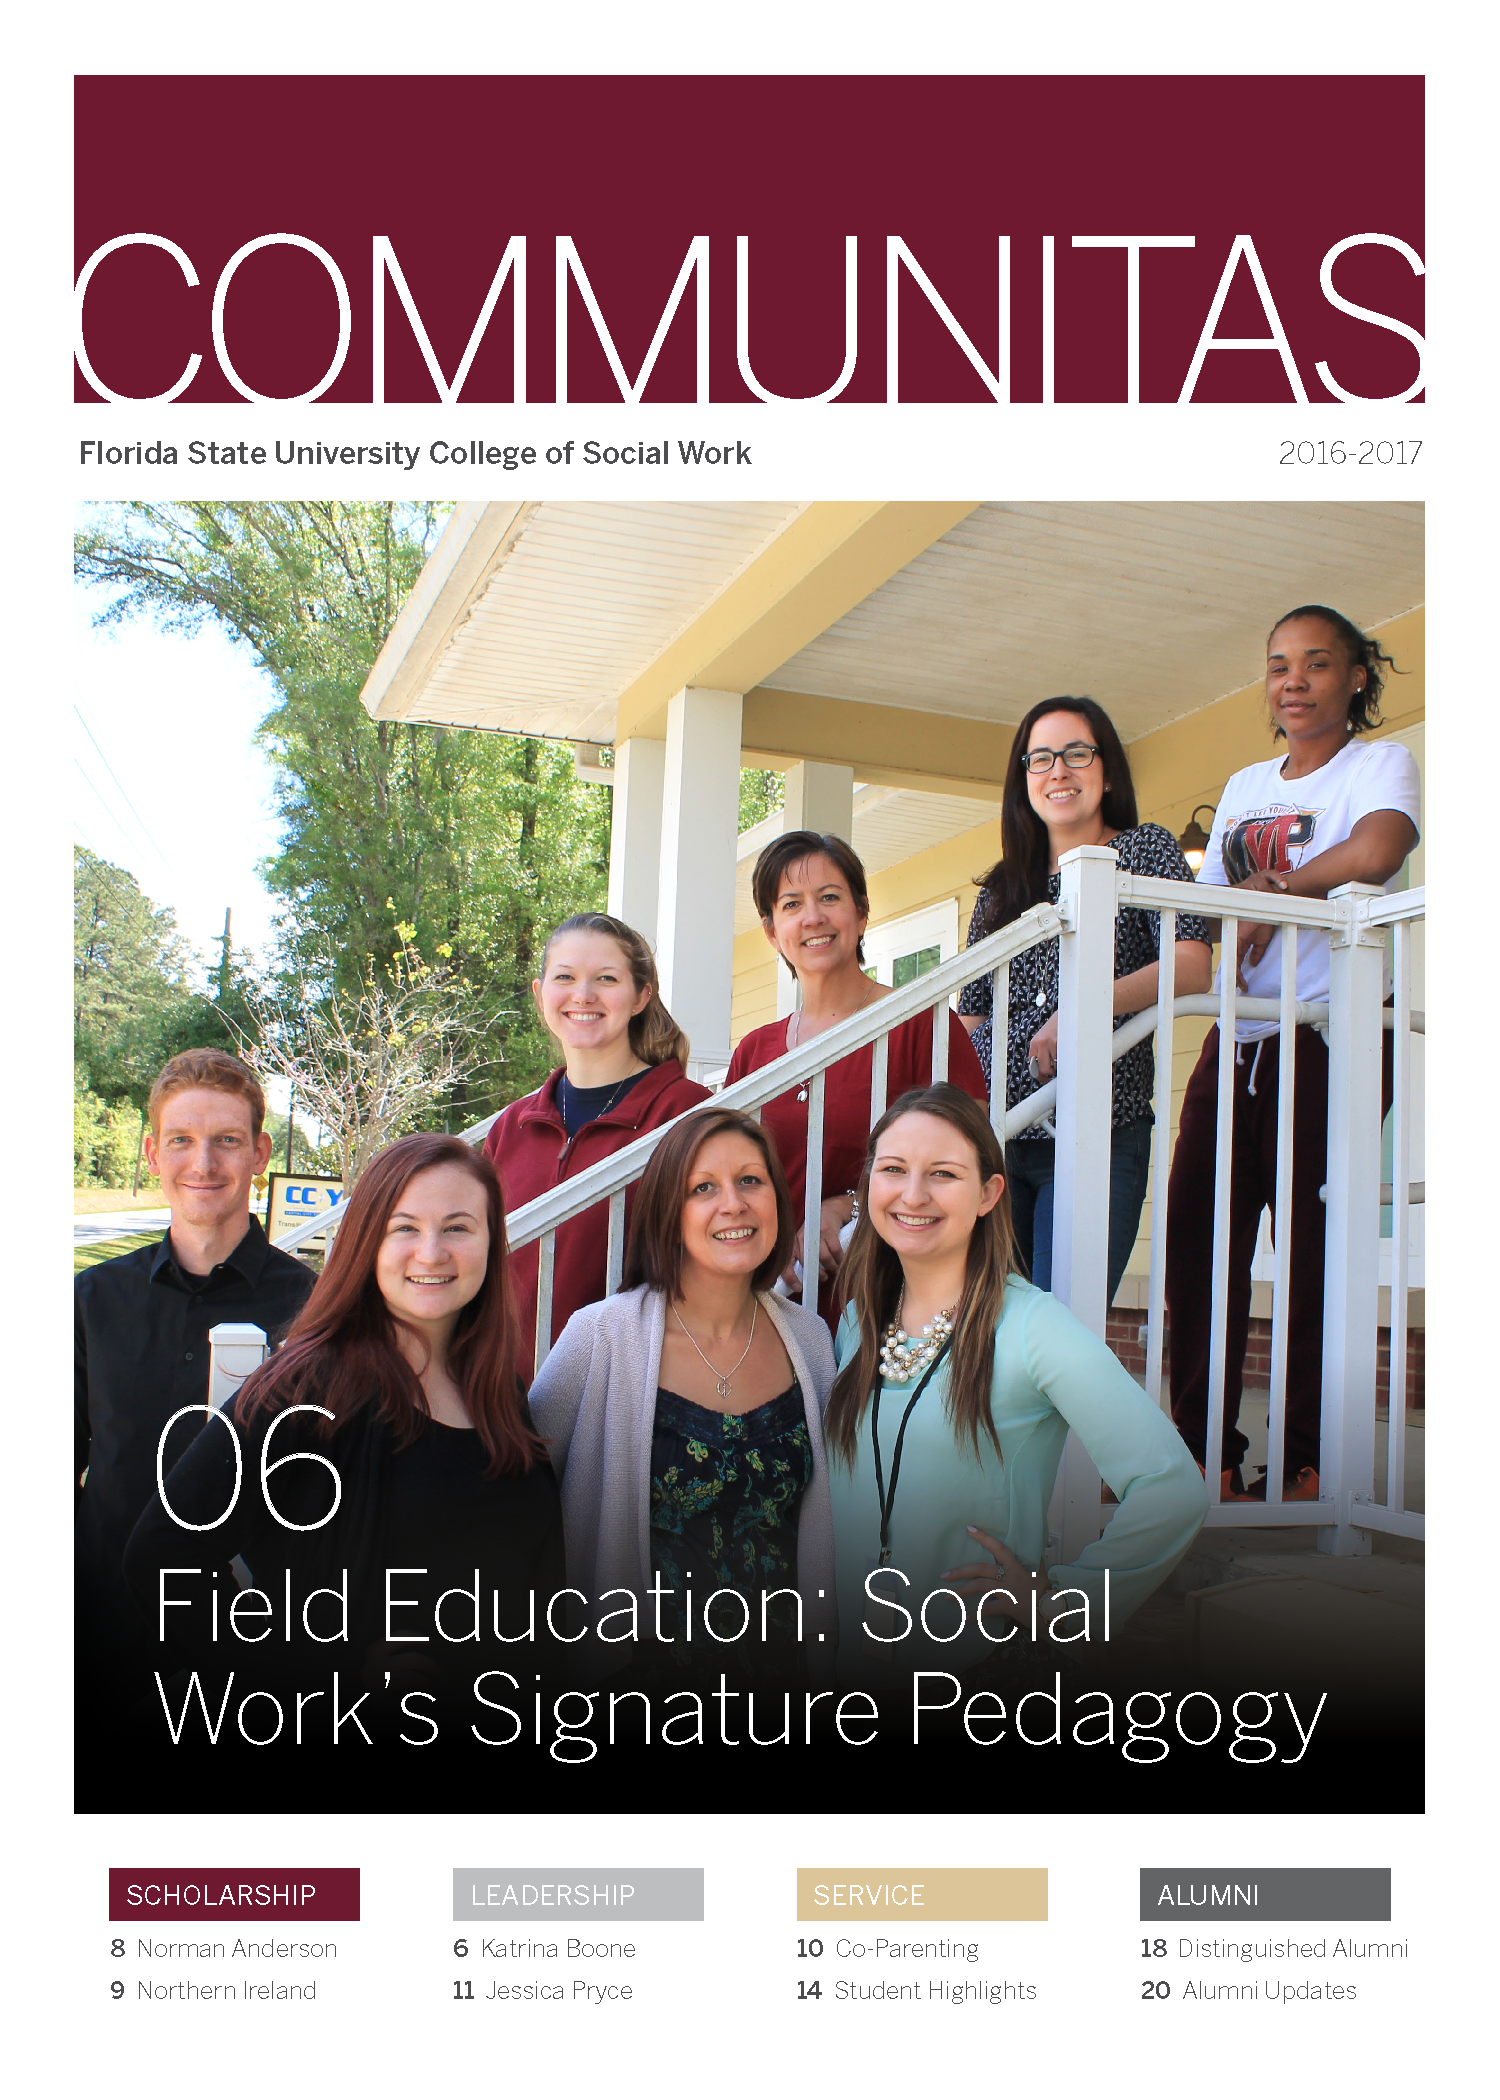 Communitas Magazine Cover Photo 2017